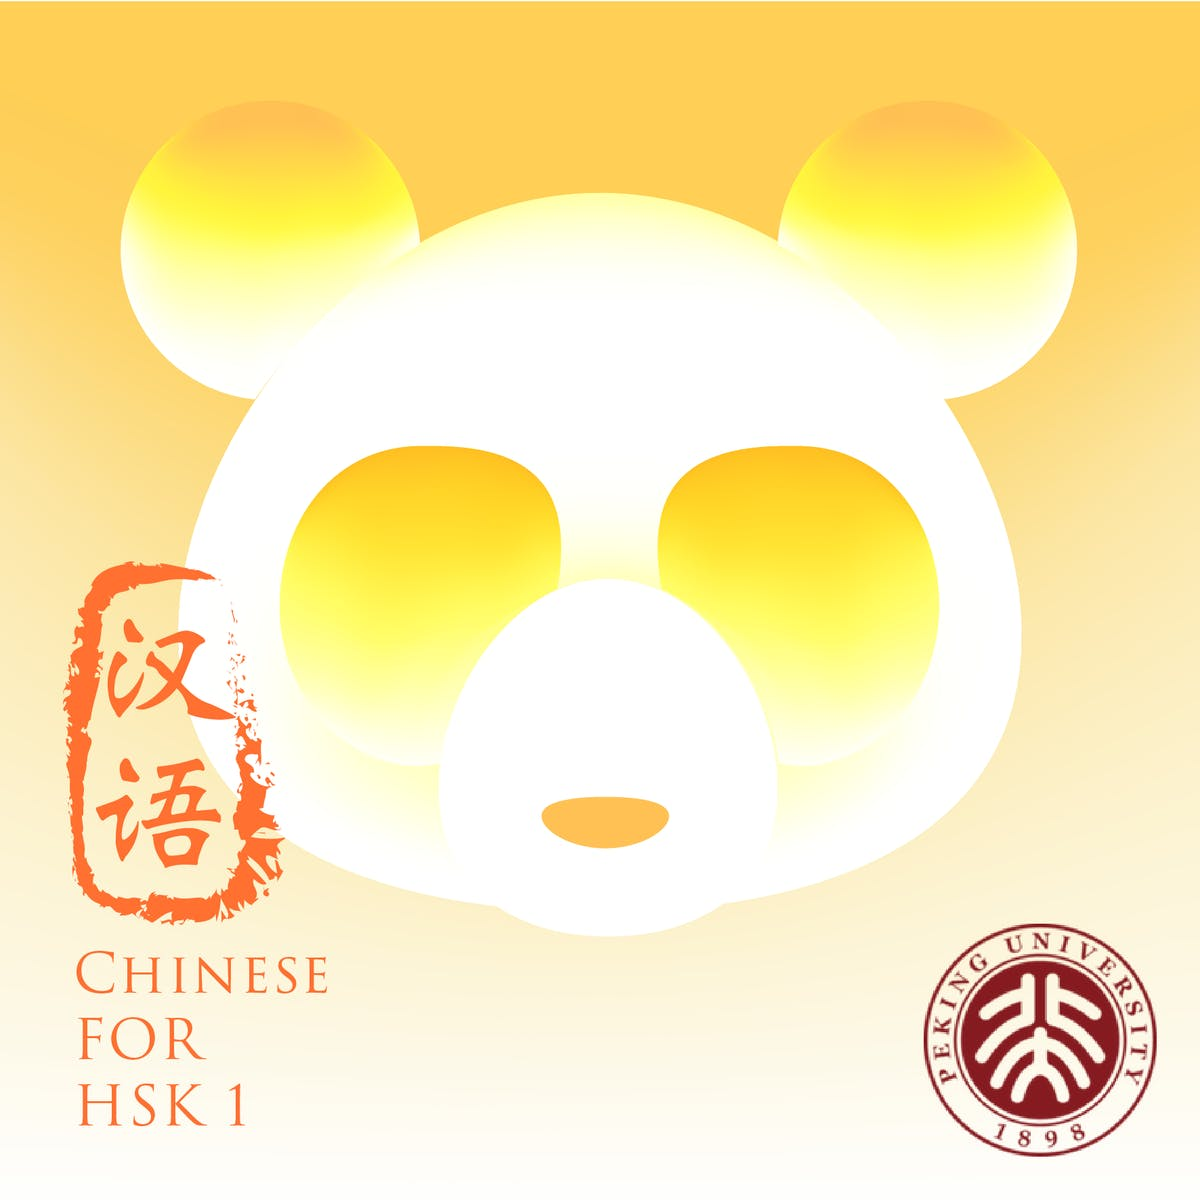 Chinese For Hsk 1 Coursera